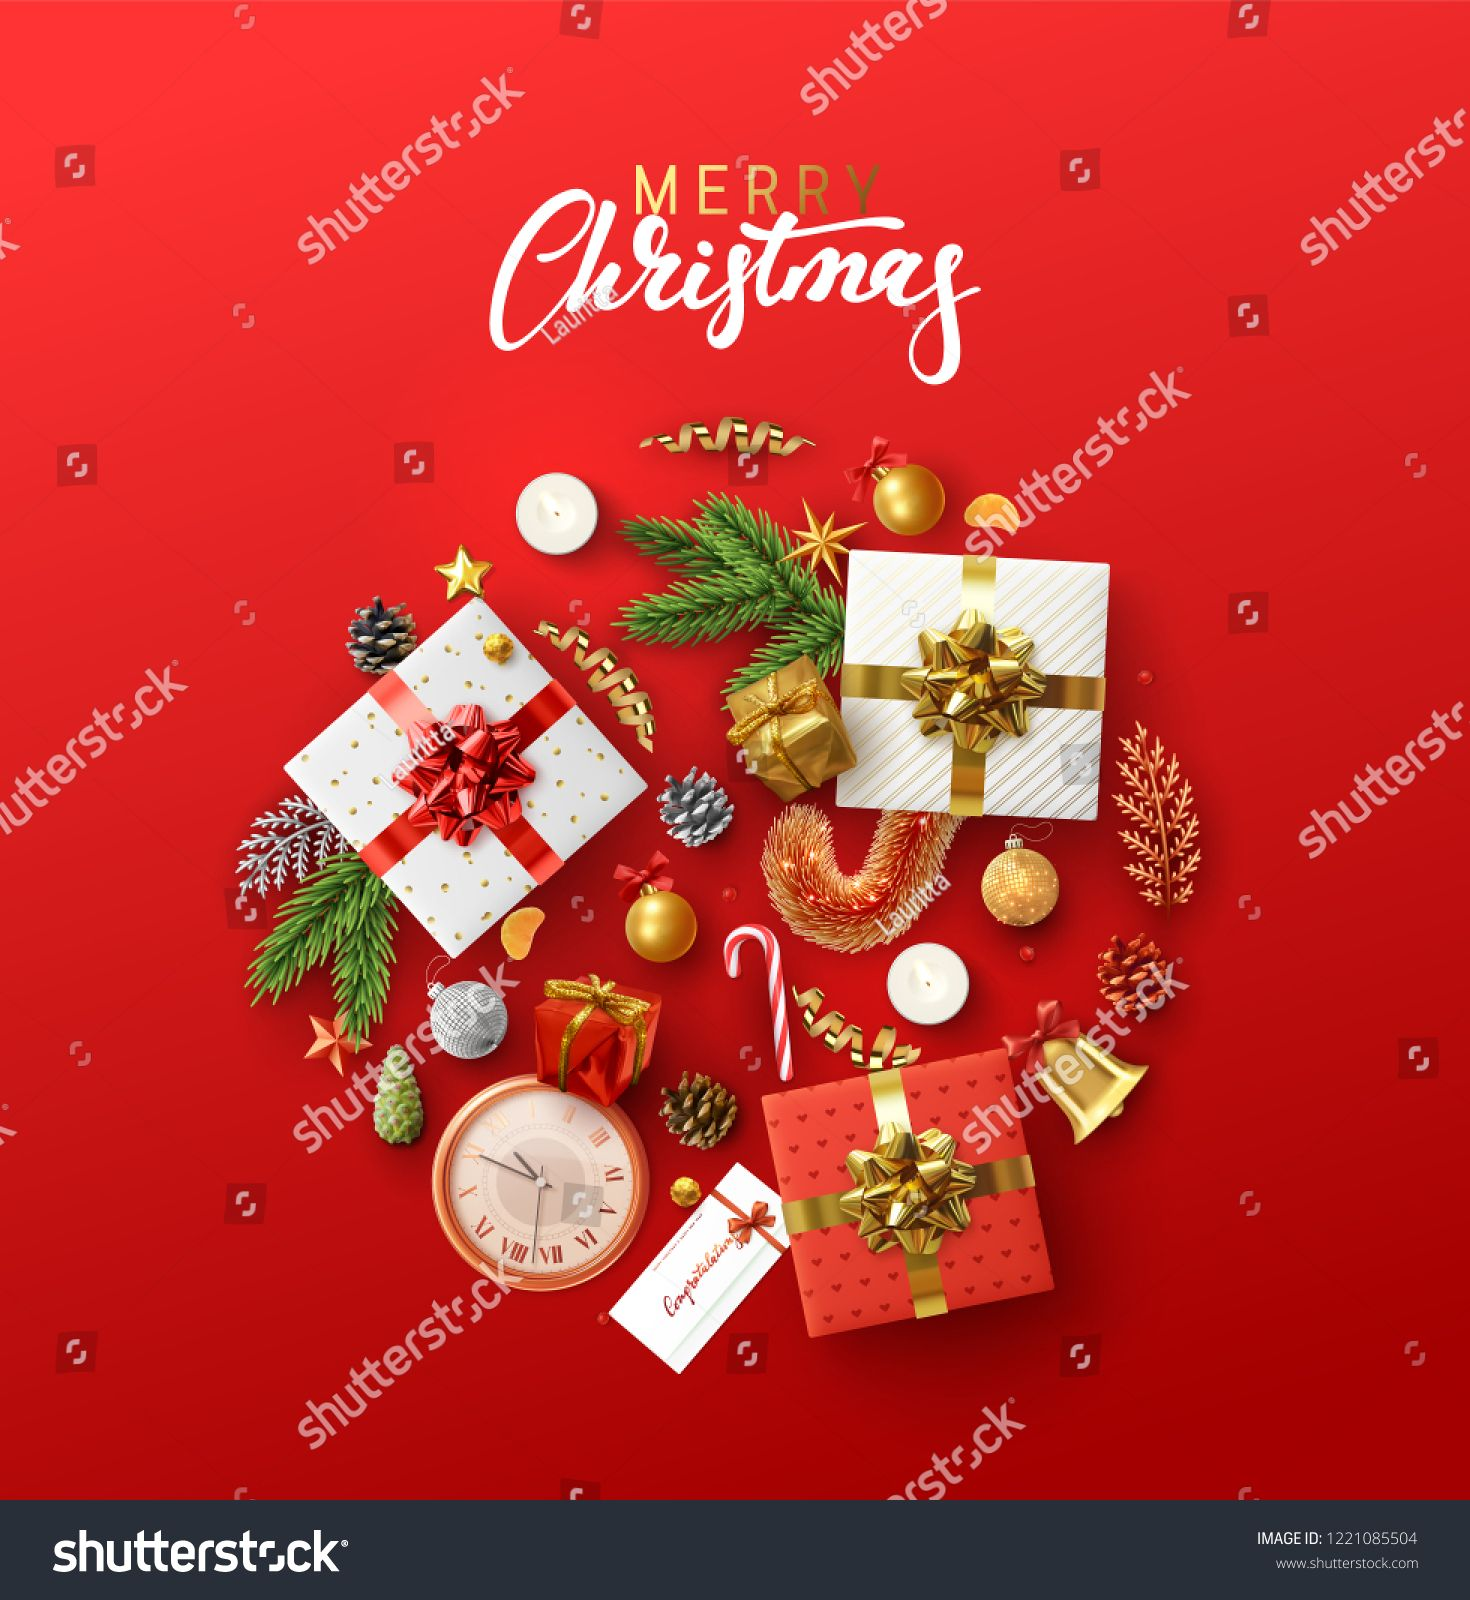 Christmas Greeting Card With Holiday Objects Merry Christmas And